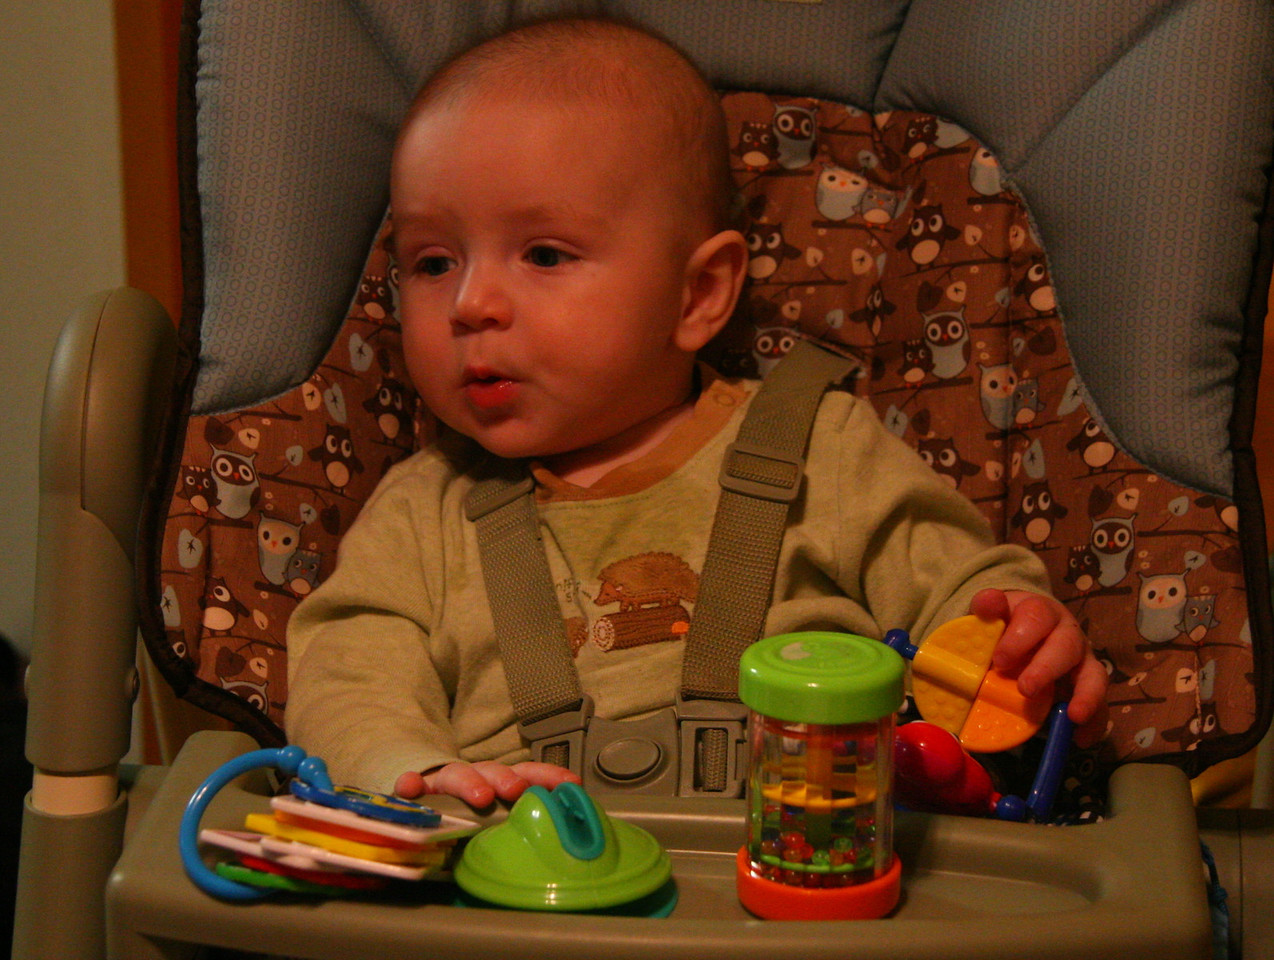 Joaquin at 5 months